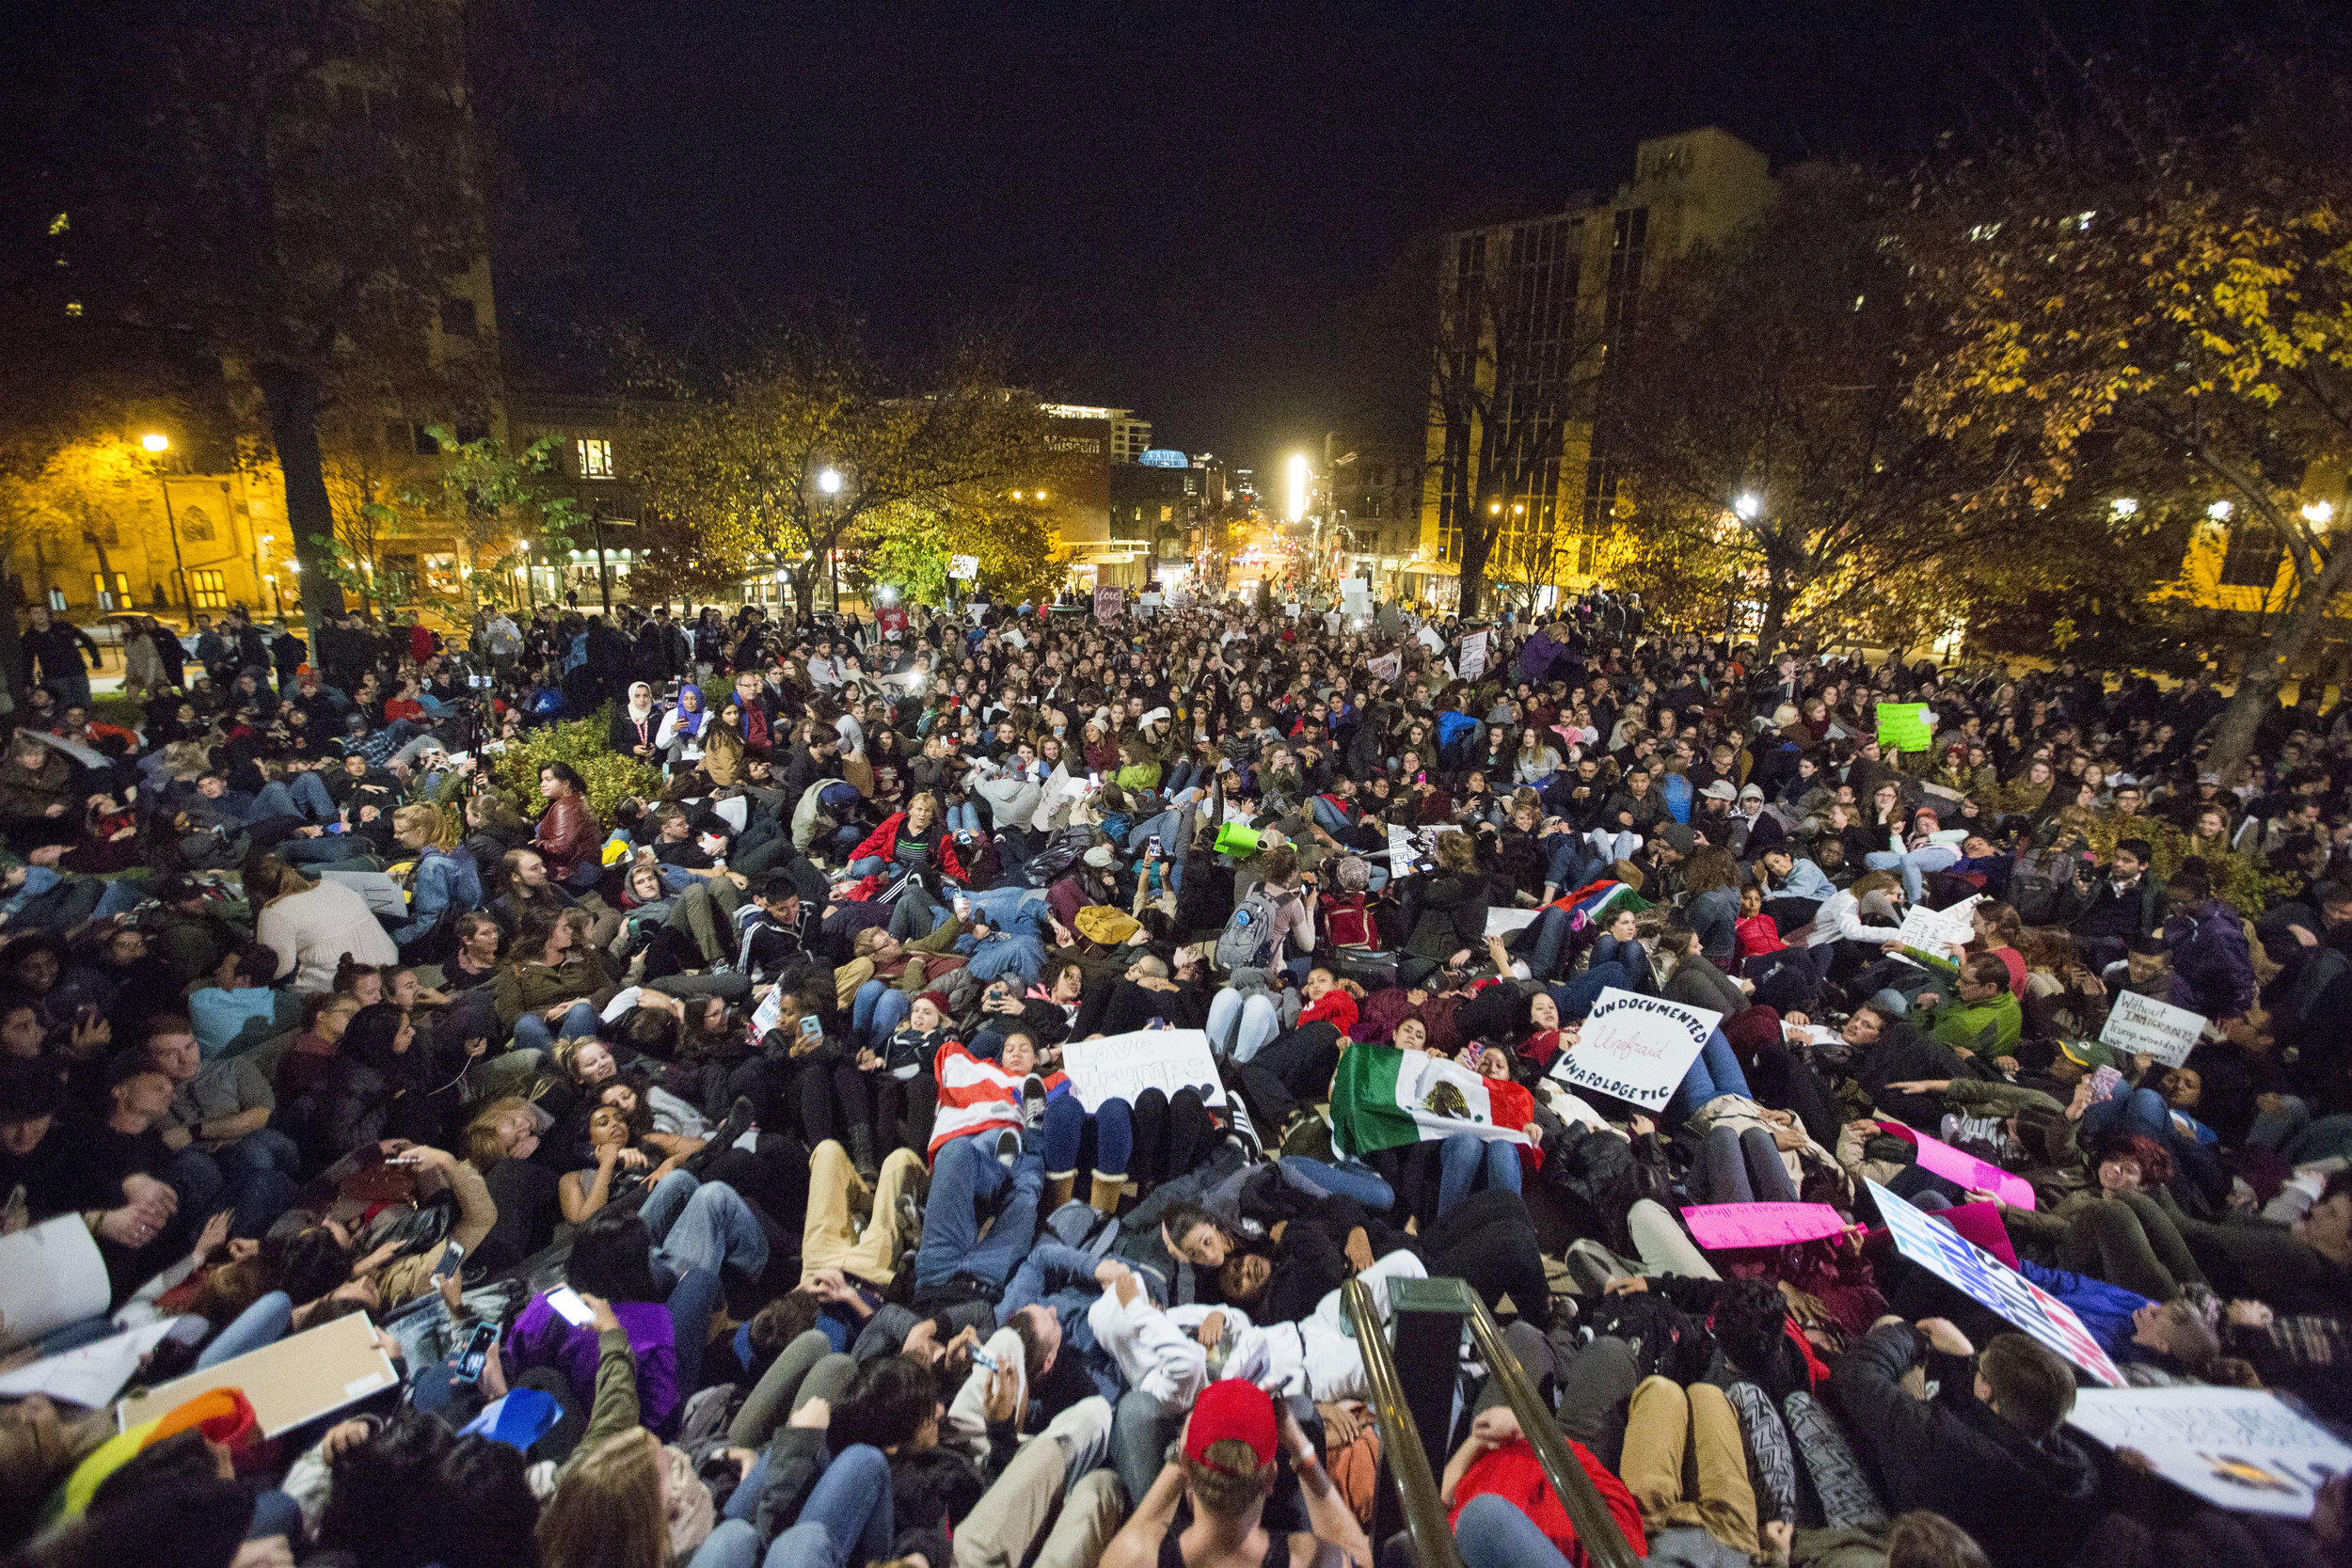 Protesters lay down outside the Capitol building for a moment of silence during an anti-Trump rally on Nov 10, 2016 in Madison, WI.